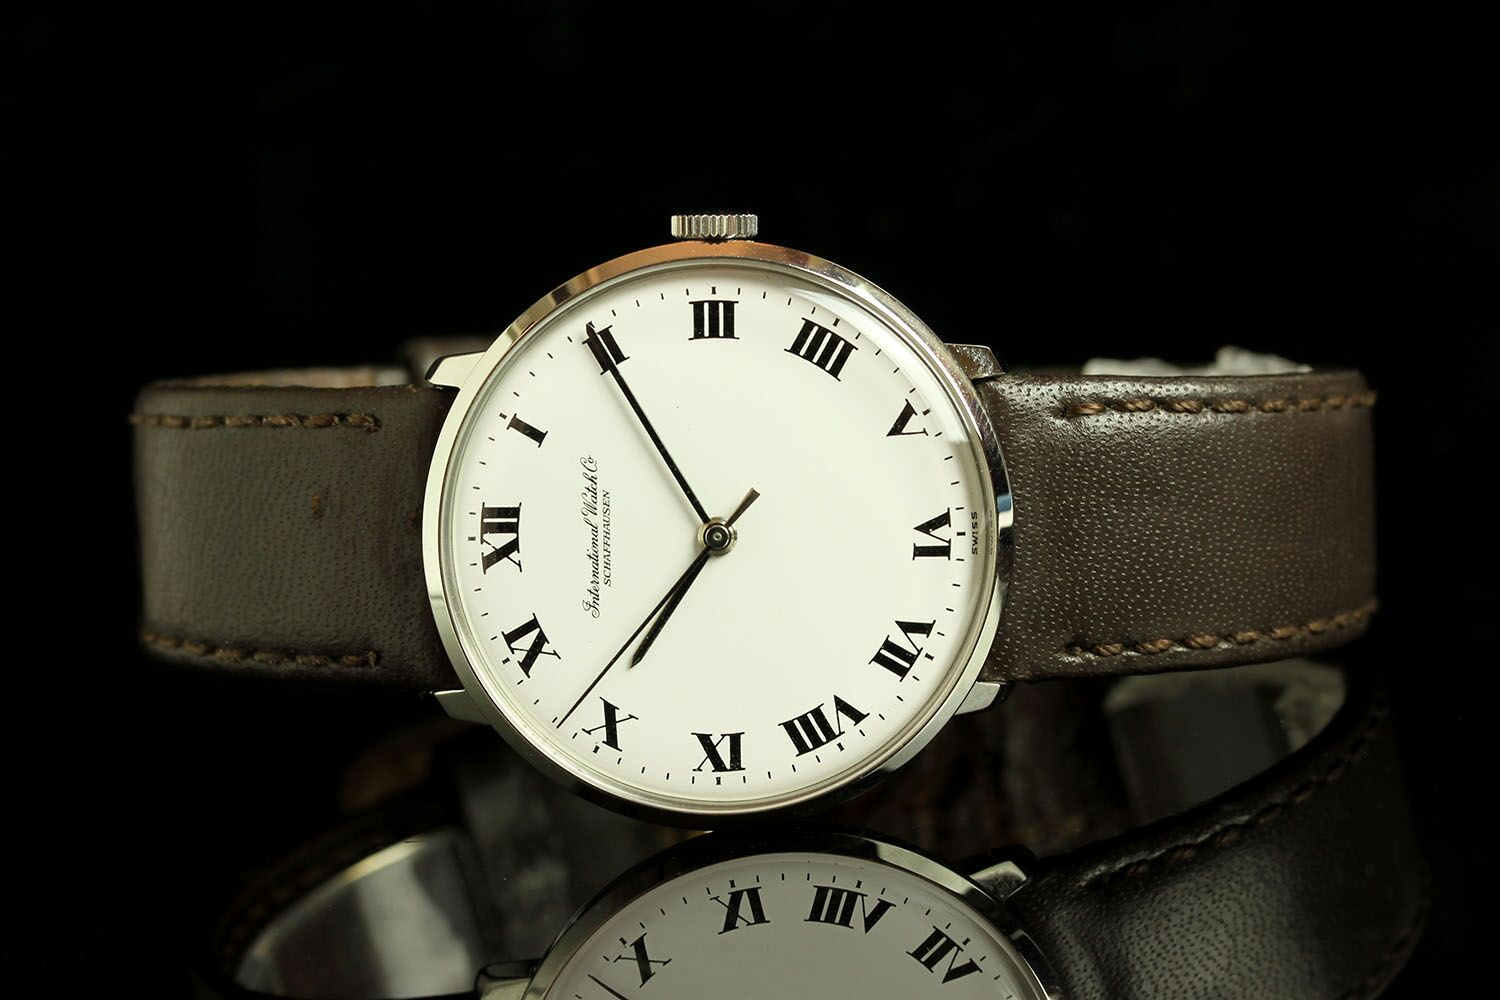 GENTLEMANS IWC 1986312, round, silver dial with black hour and minute hand, silver second hand,black